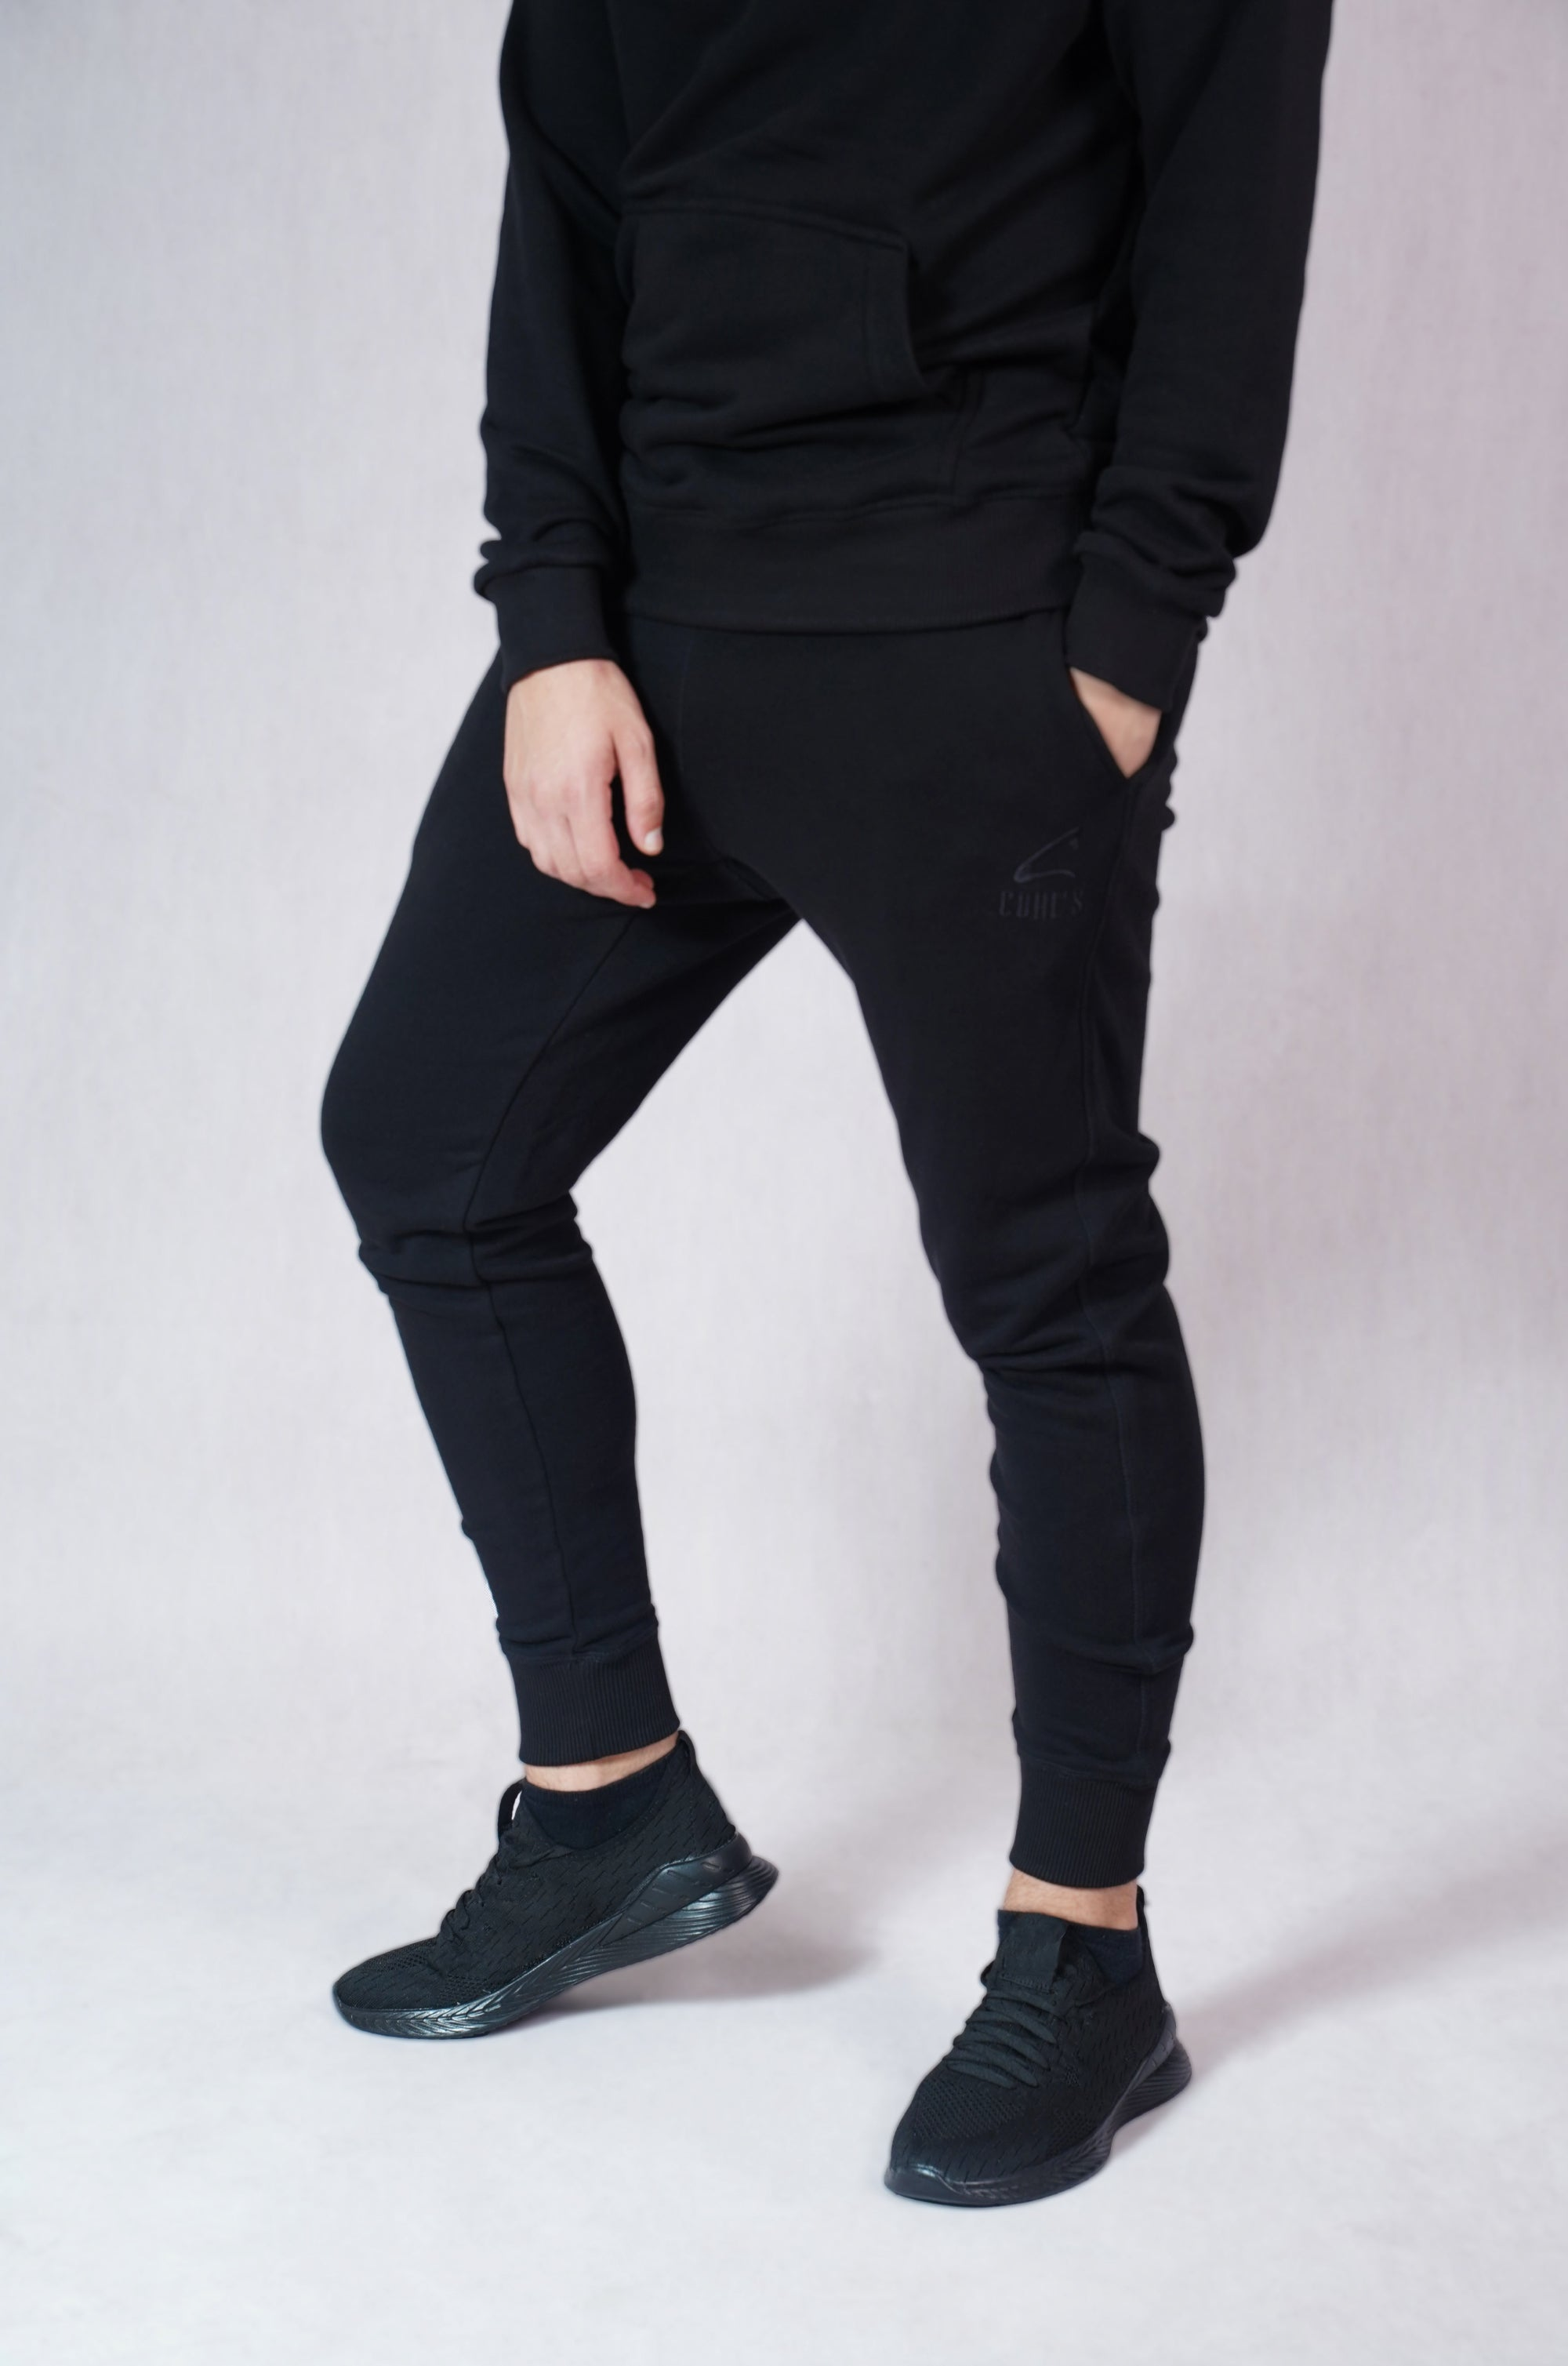 Black Sweatpants for Men - C212012